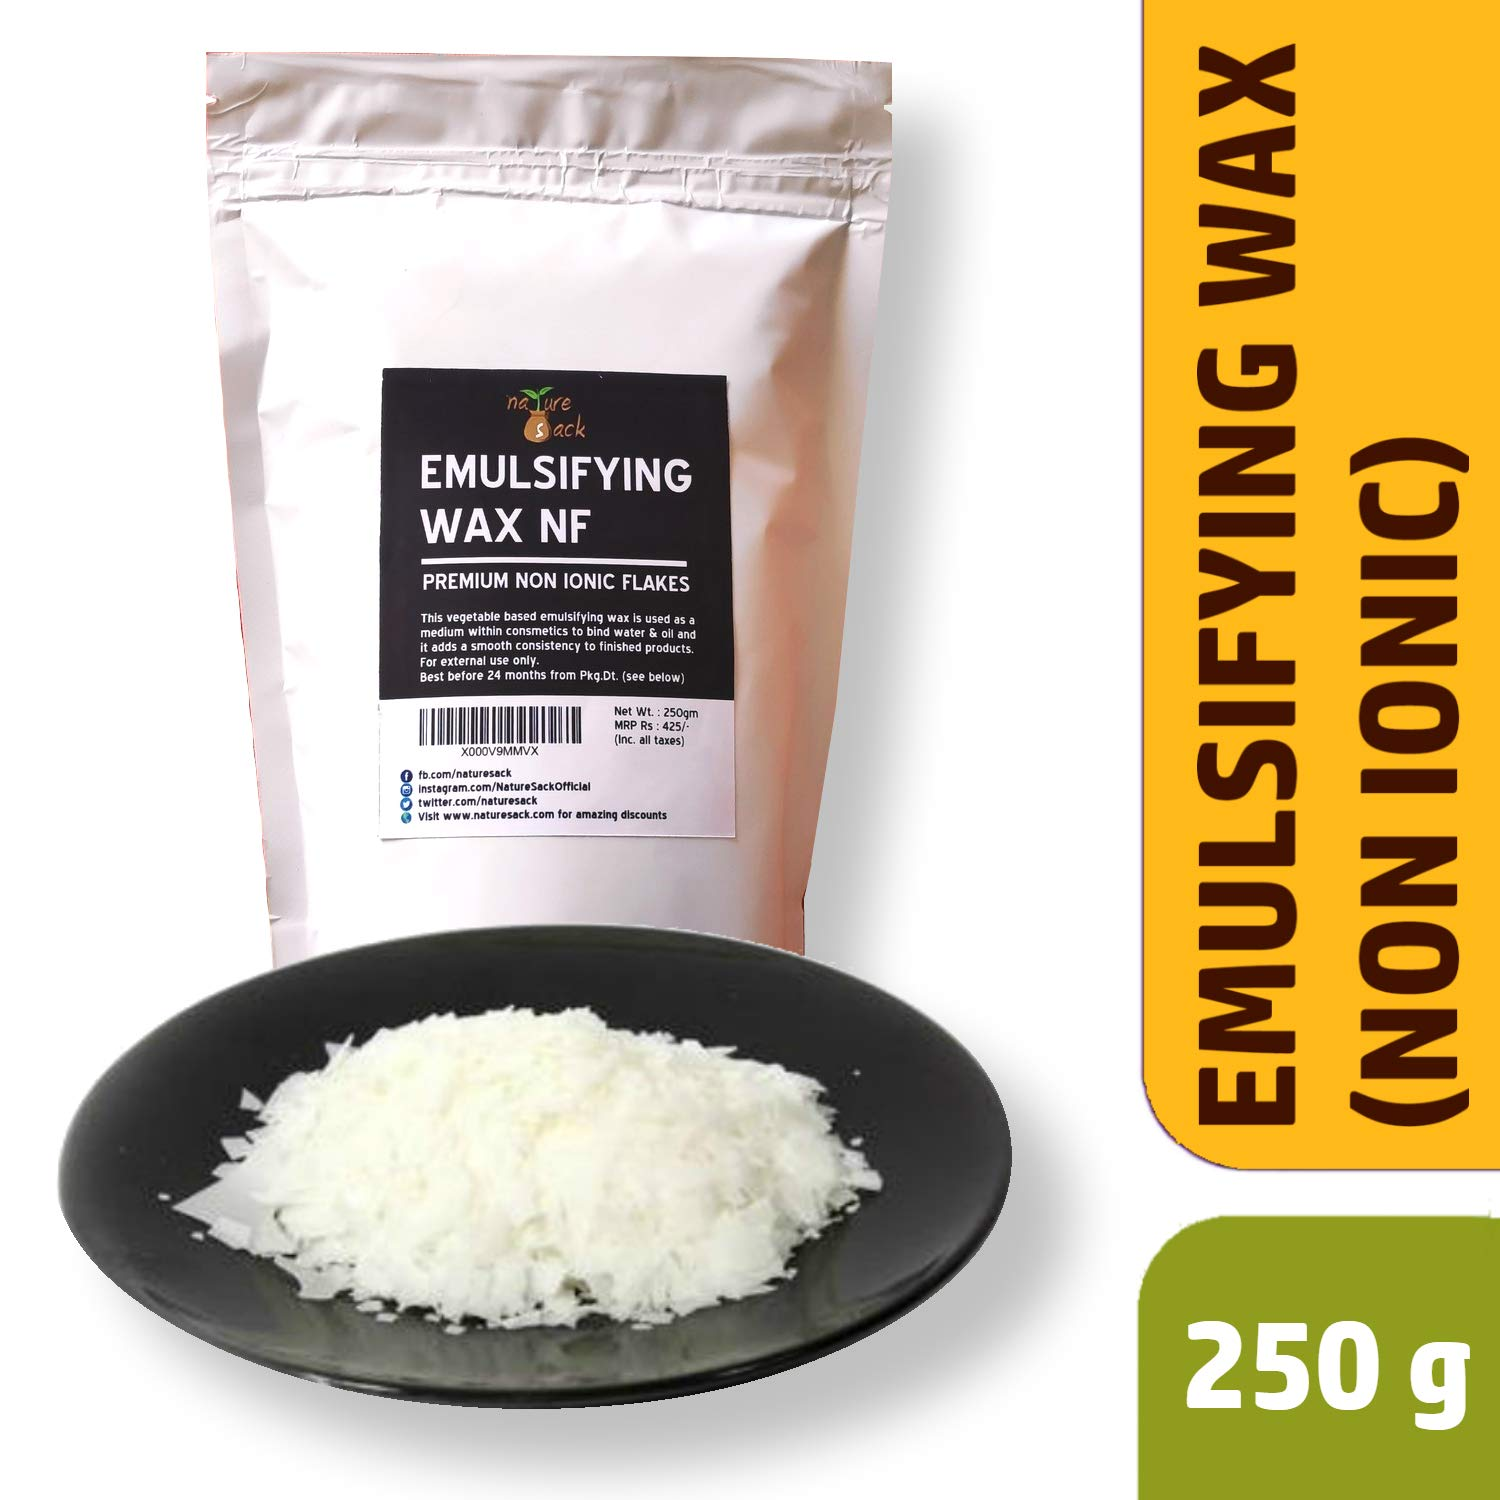 Buy NatureSack-The Best Of Nature Emulsifying Wax NF for DIY